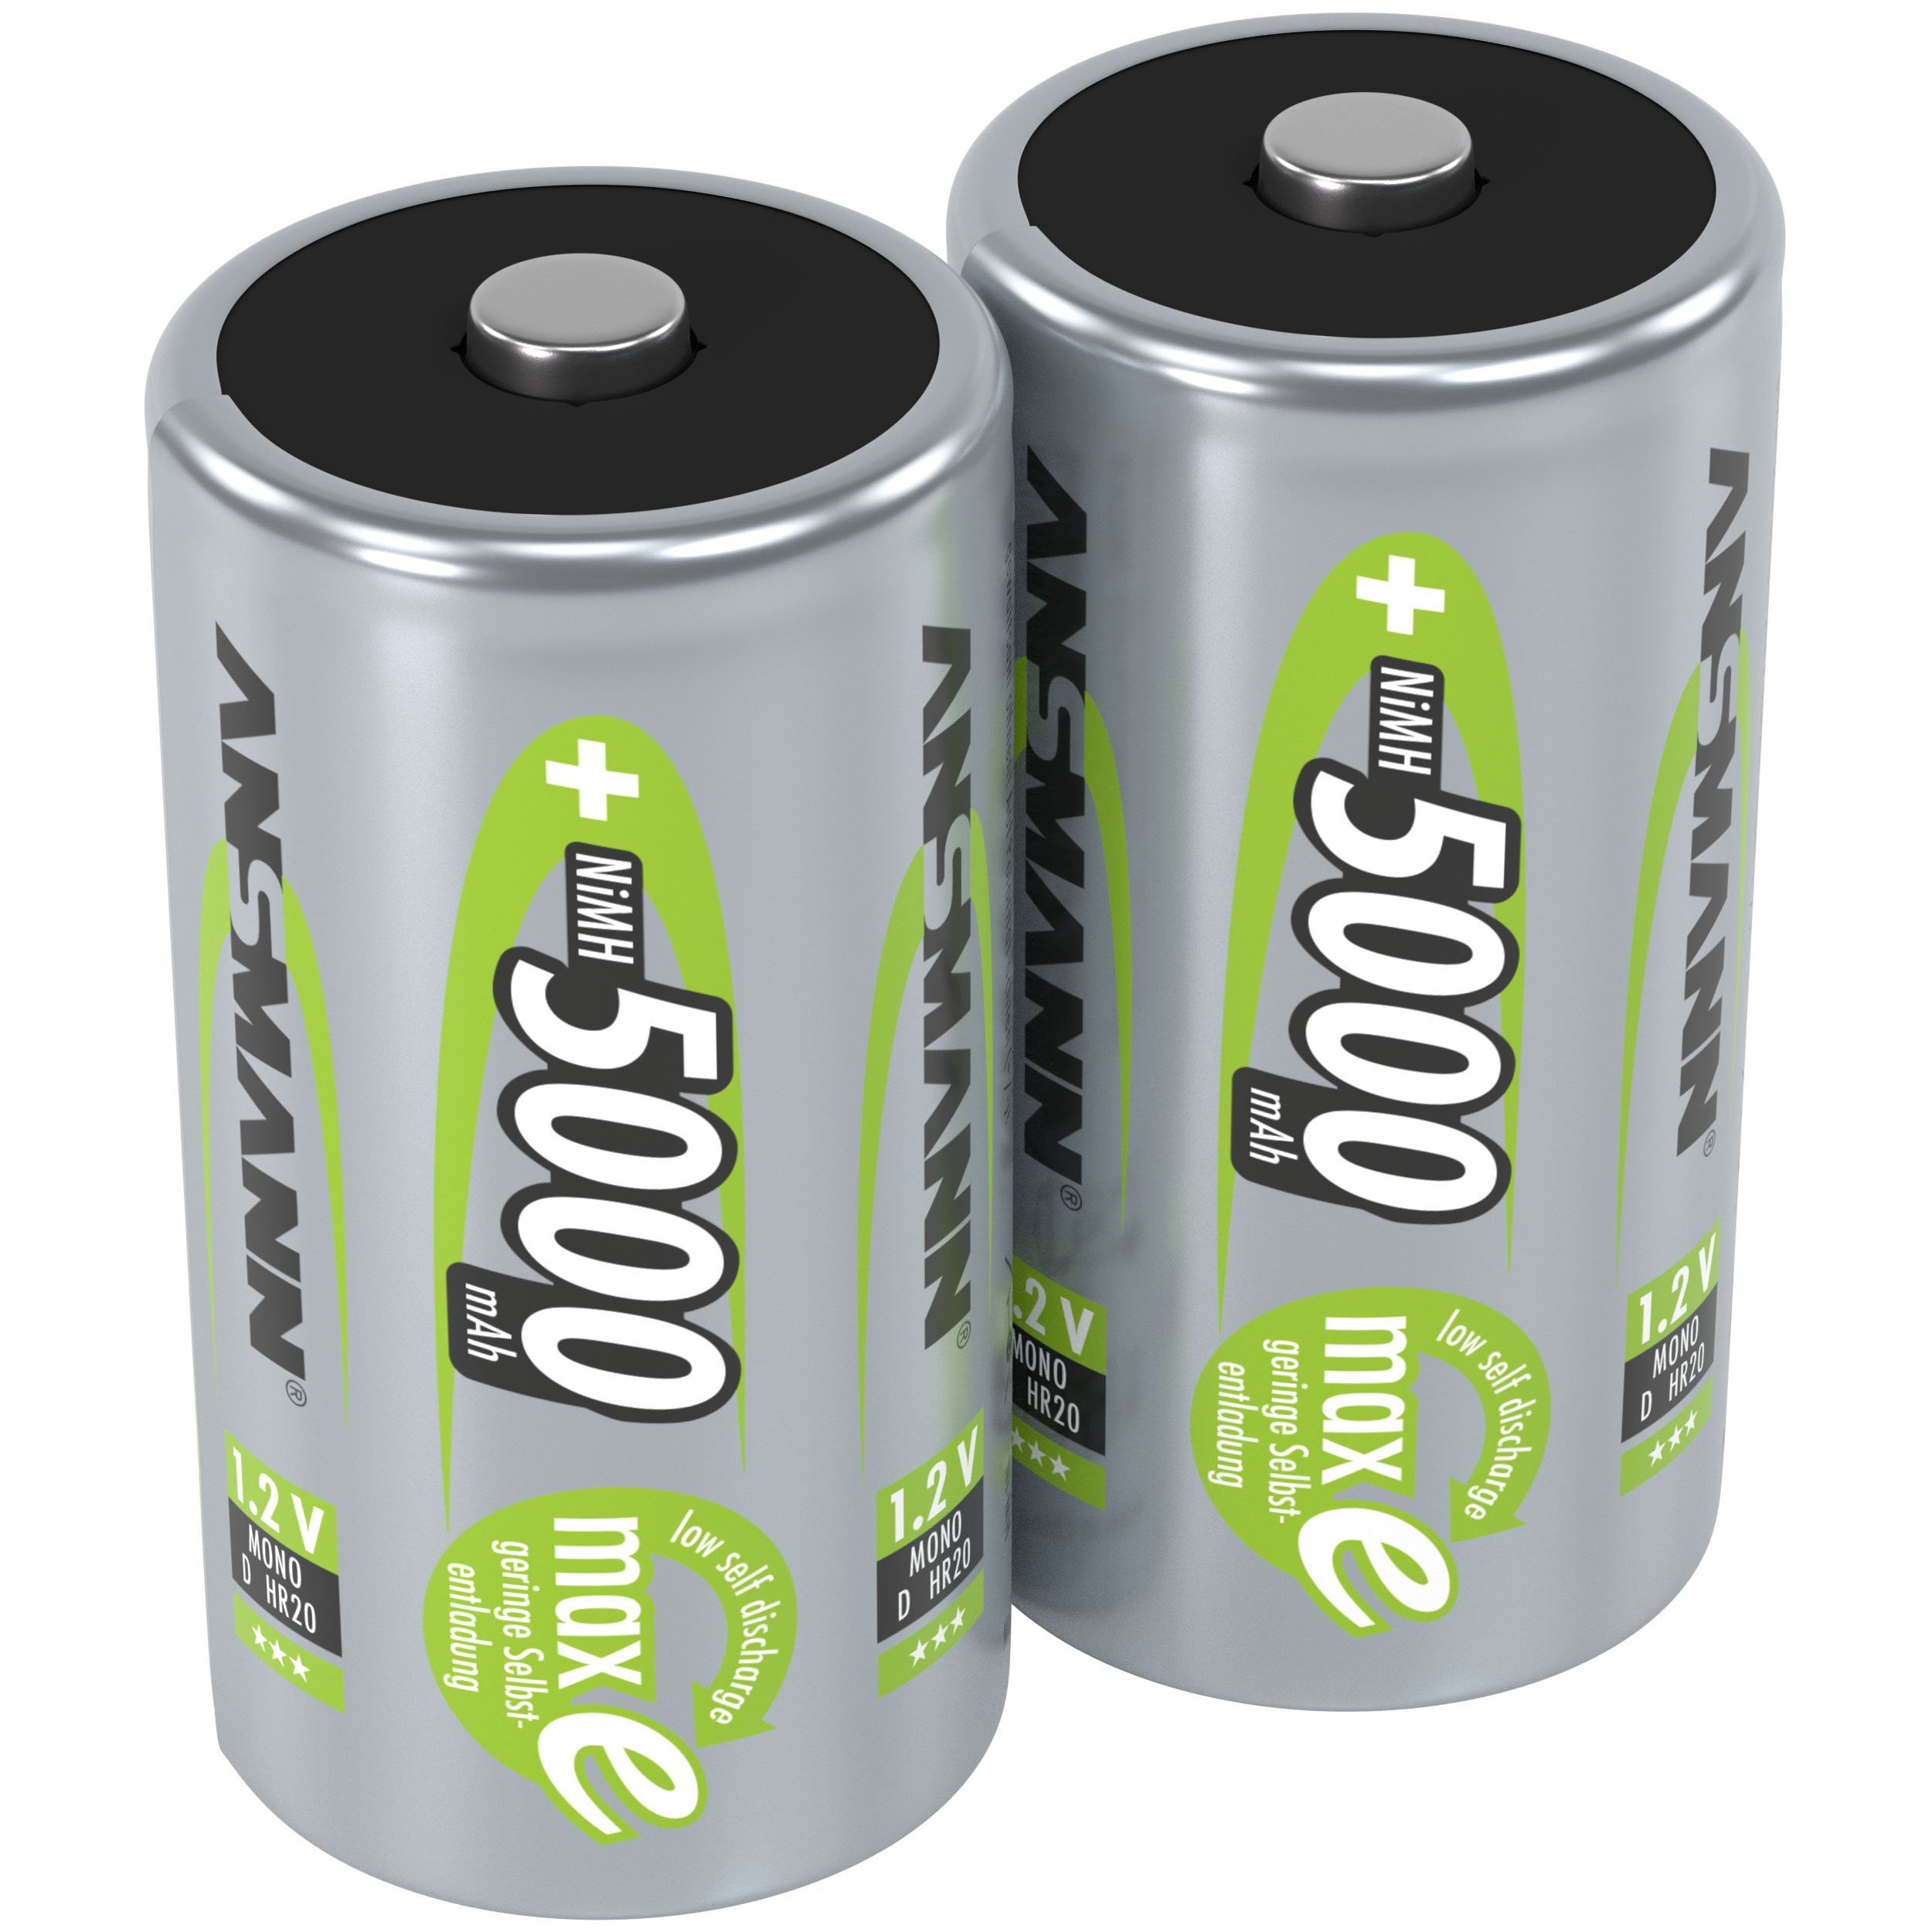 ANSMANN Rechargeable D Batteries 5000mAh maxE ready2use NiMH Professional D Battery pre-charged Power Accu for flashlight (2-Pack)